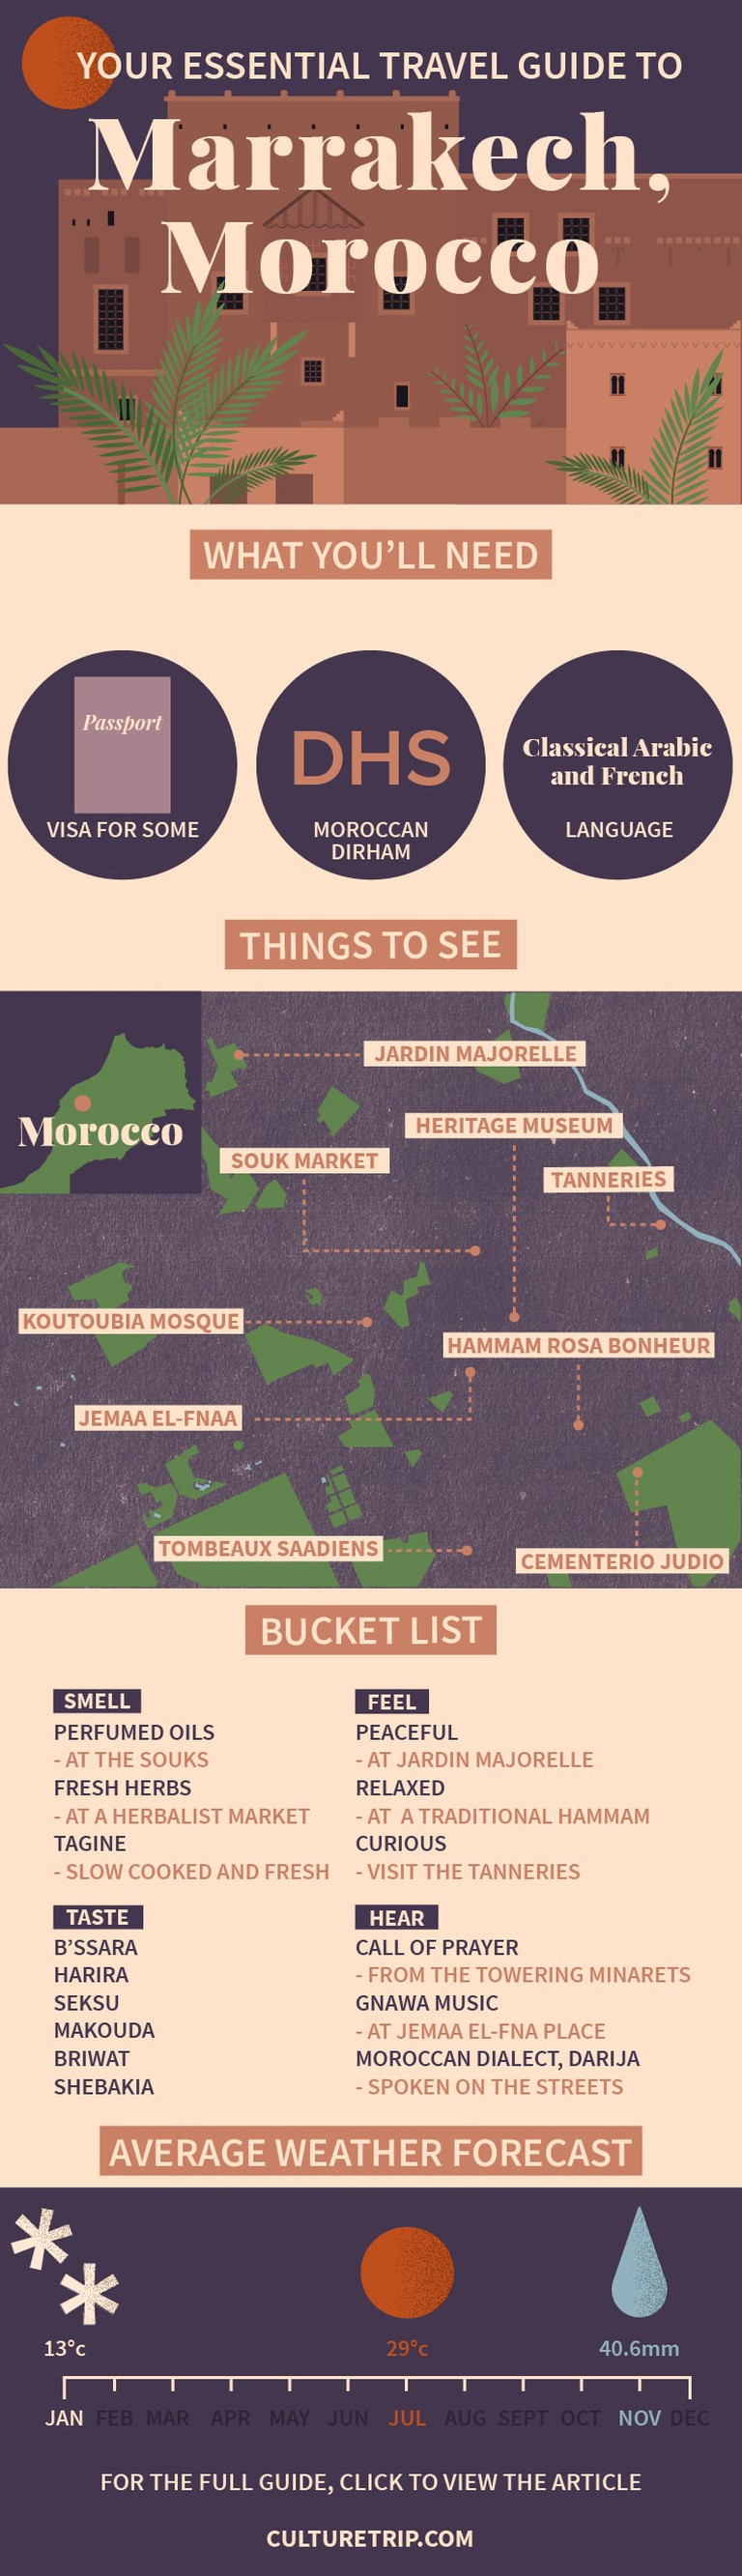 A travel guide to planning your trip to Marrakech, Morocco.